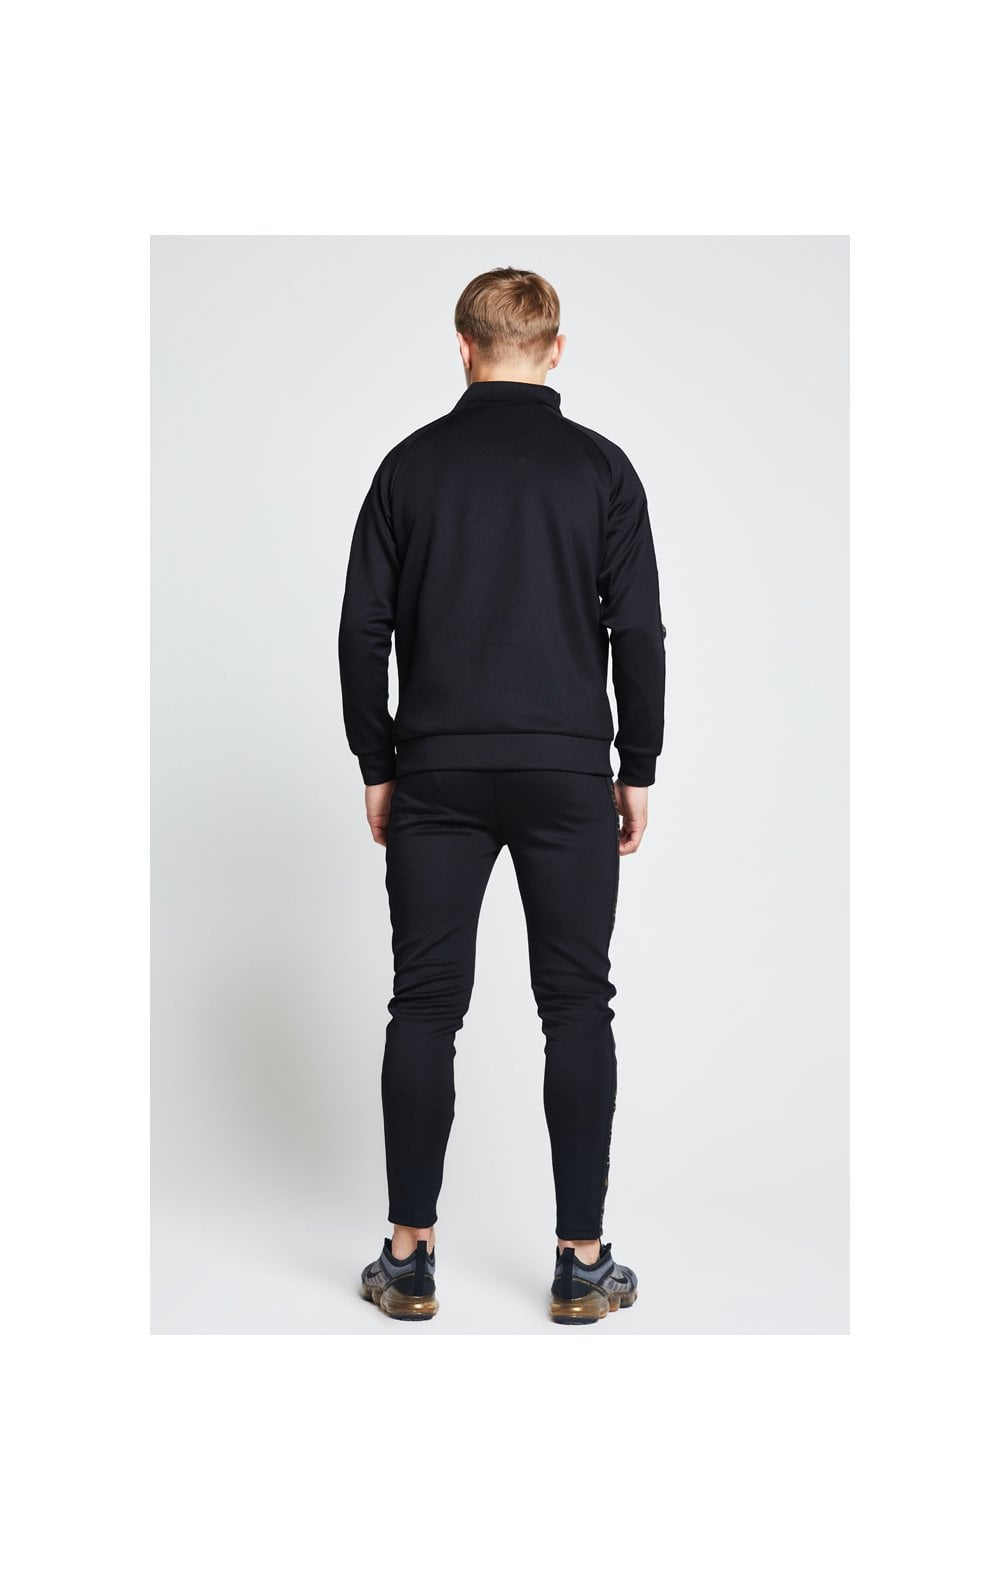 Illusive London Funnel Neck 1/4 Zip Hoodie - Black (4)